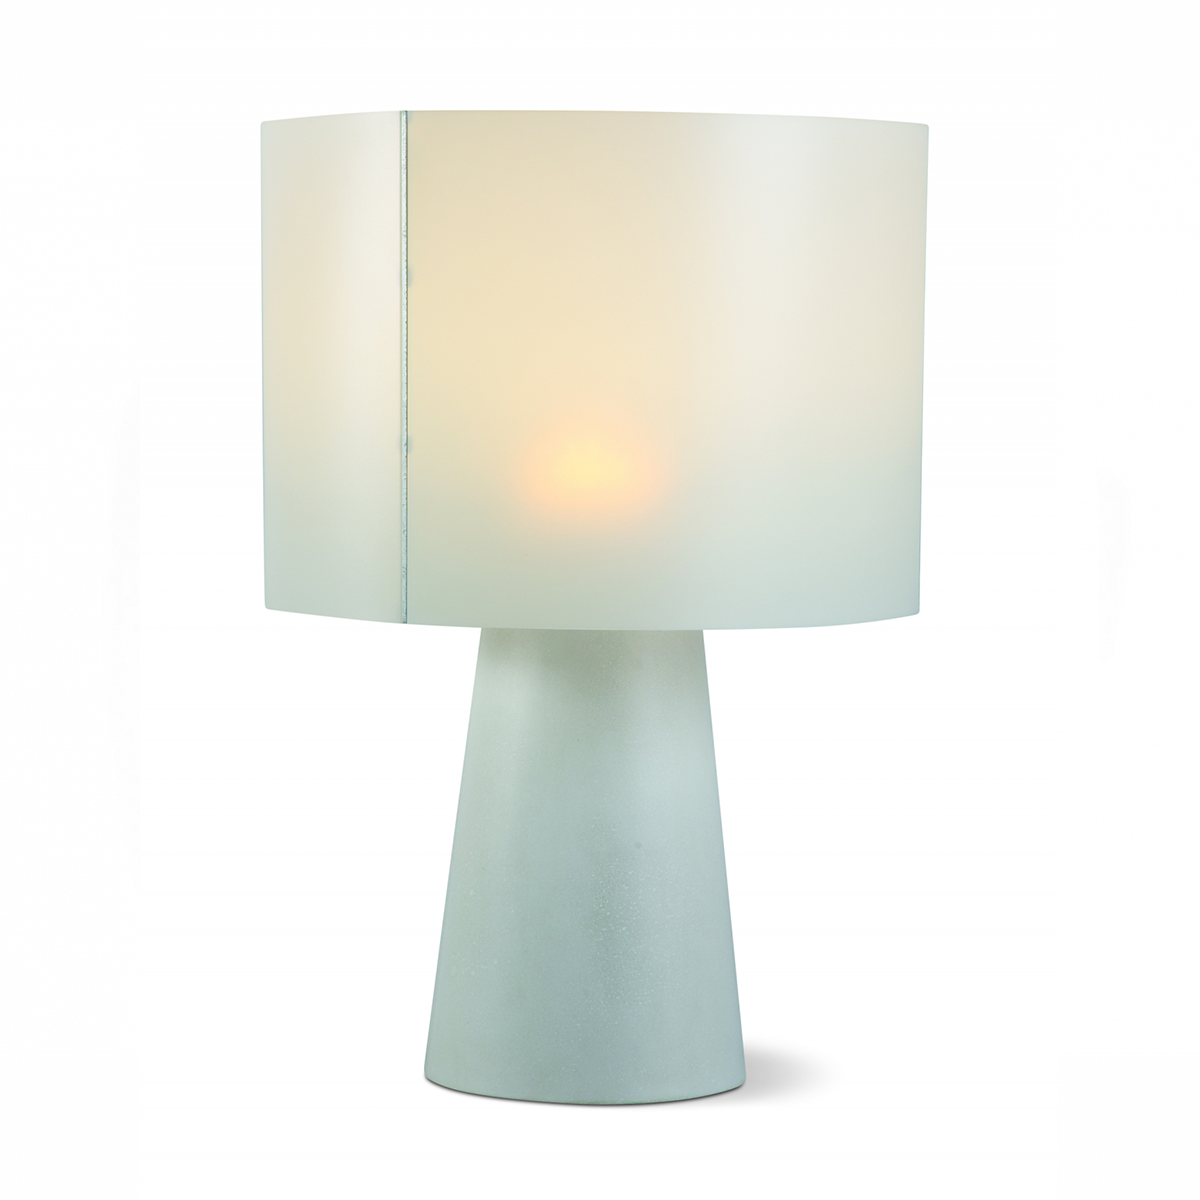 SEASONAL LIVING Inda Cordless Outdoor LED Table Lamp